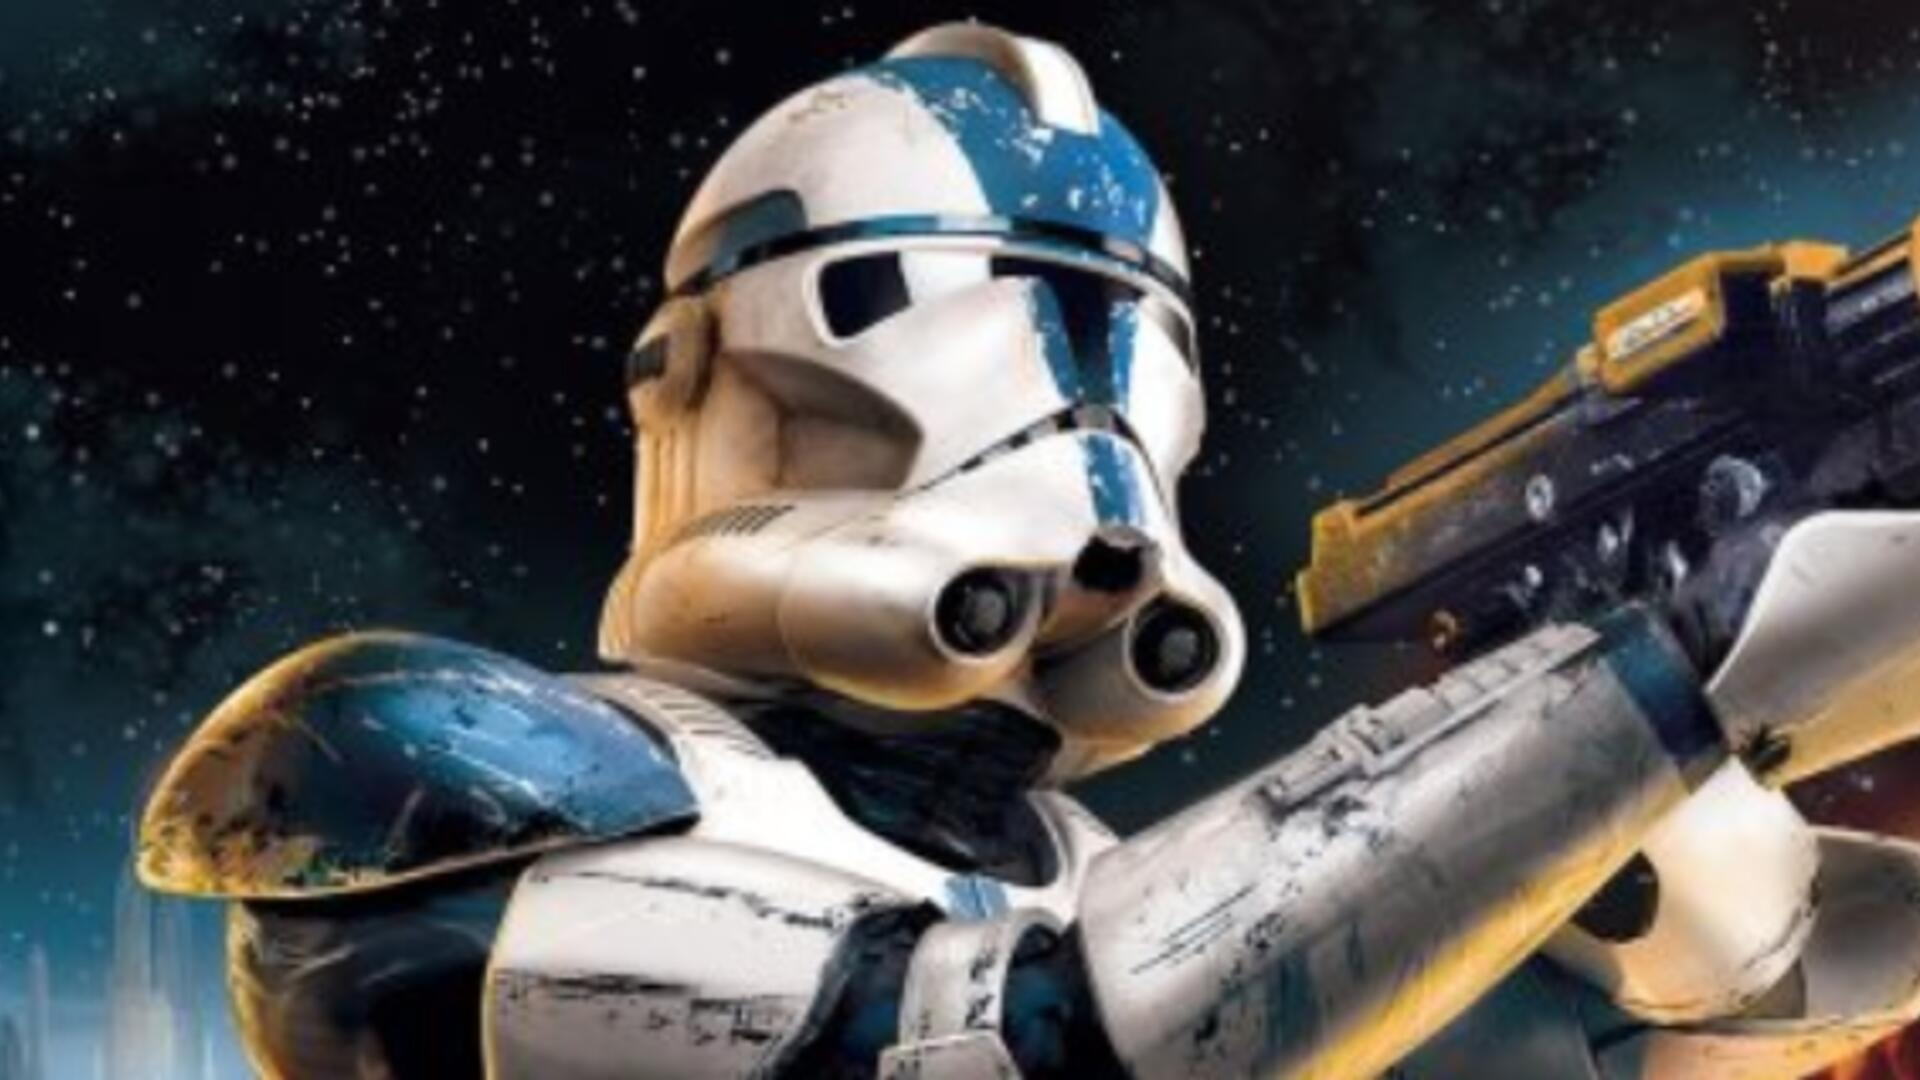 The Recent Patch for 2005's Star Wars Battlefront 2 Was From Disney and GOG